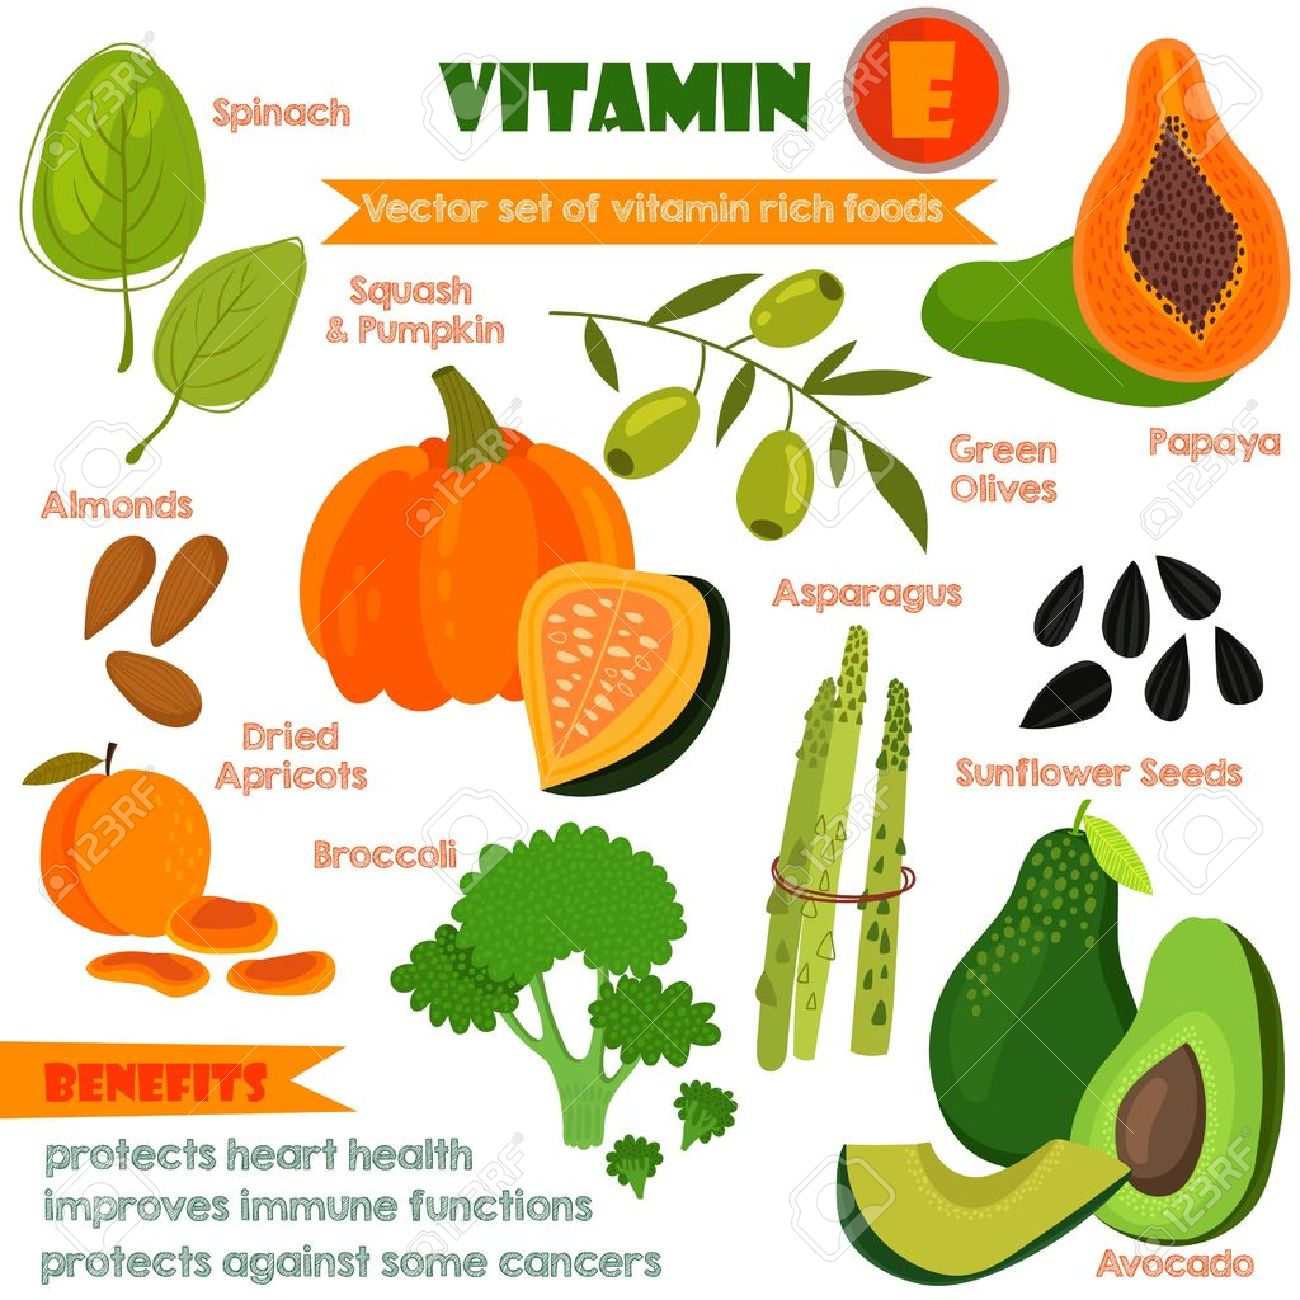 Vector - Vitamins and Minerals foods Illustrator set 13.Vector set of  vitamin rich foods. Vitamin E-spinach, dried apricots, almonds,squash and  pumpkin ...